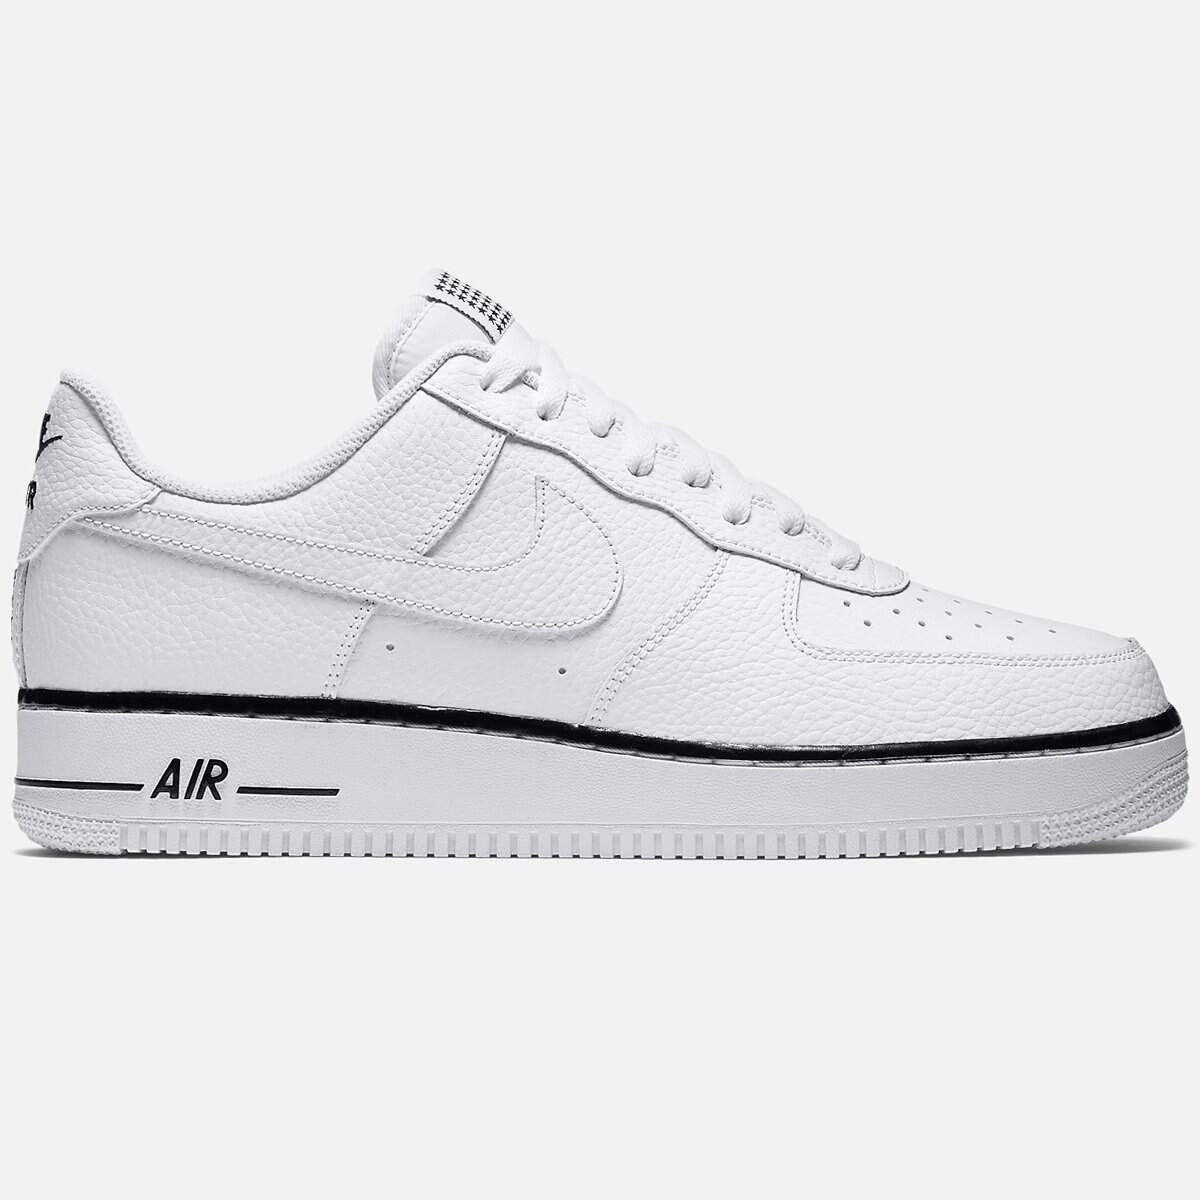 Air Force 1 Low White / Black / White Masculino